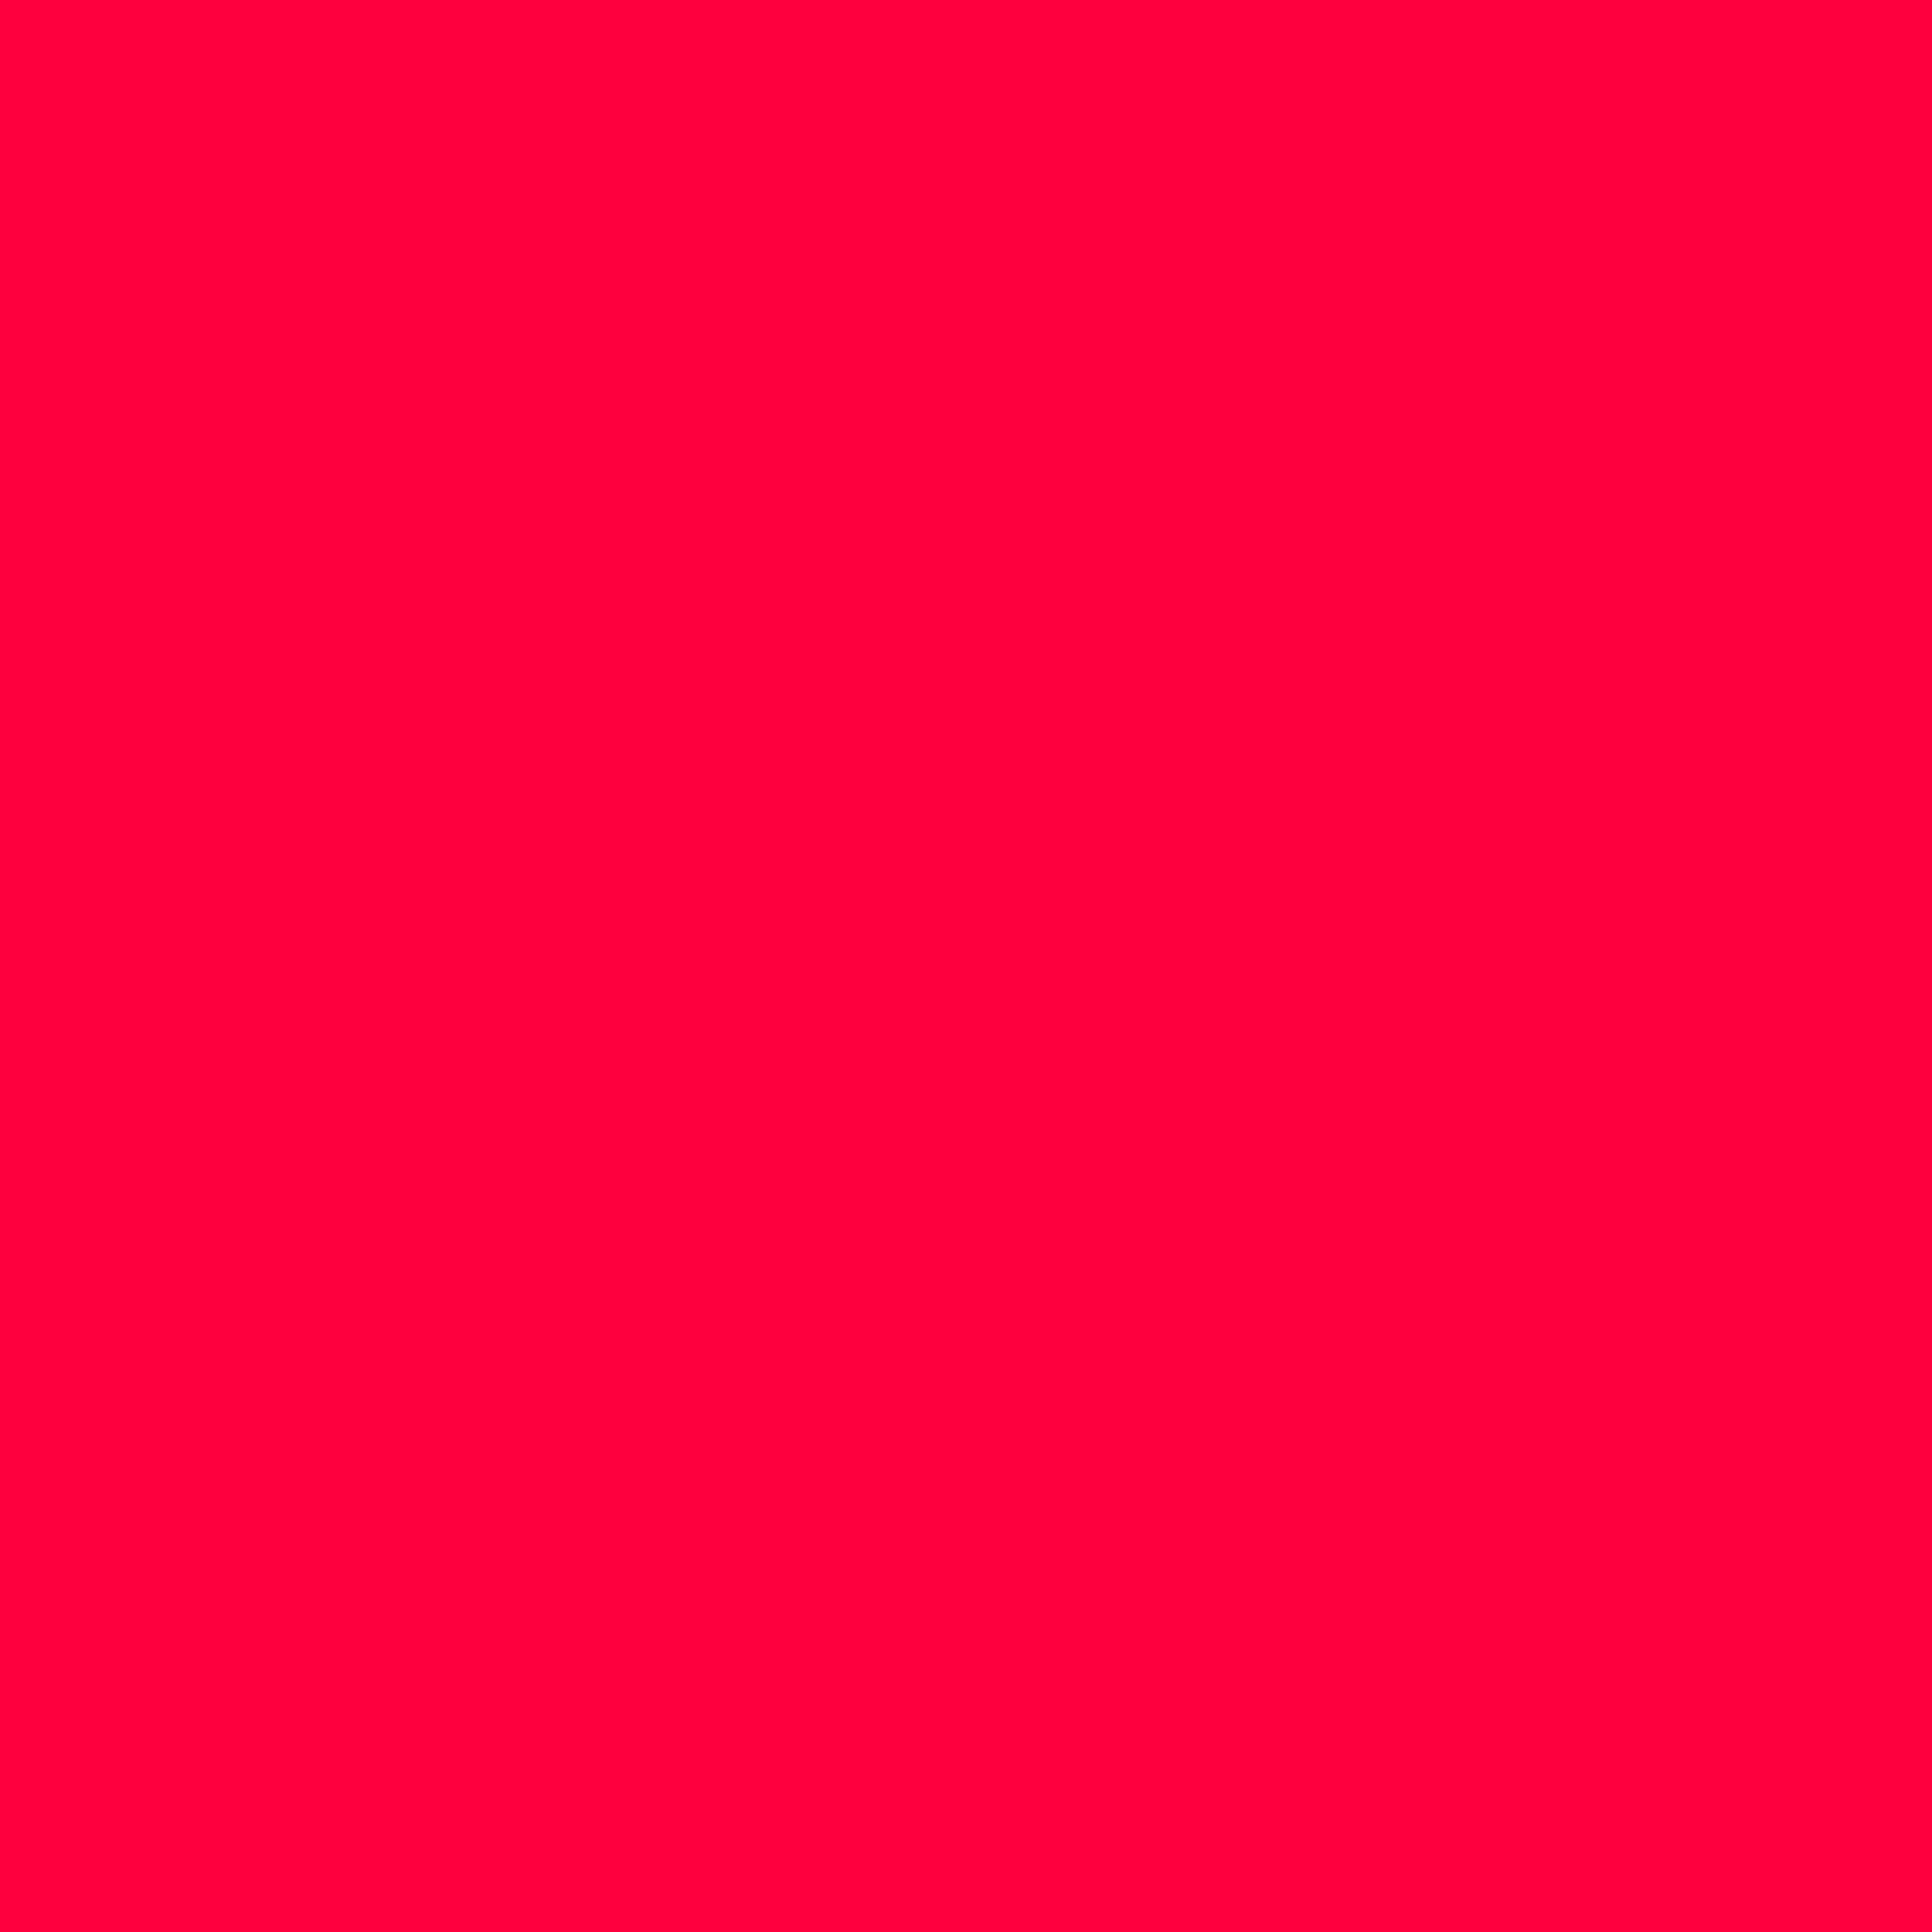 3600x3600 Electric Crimson Solid Color Background